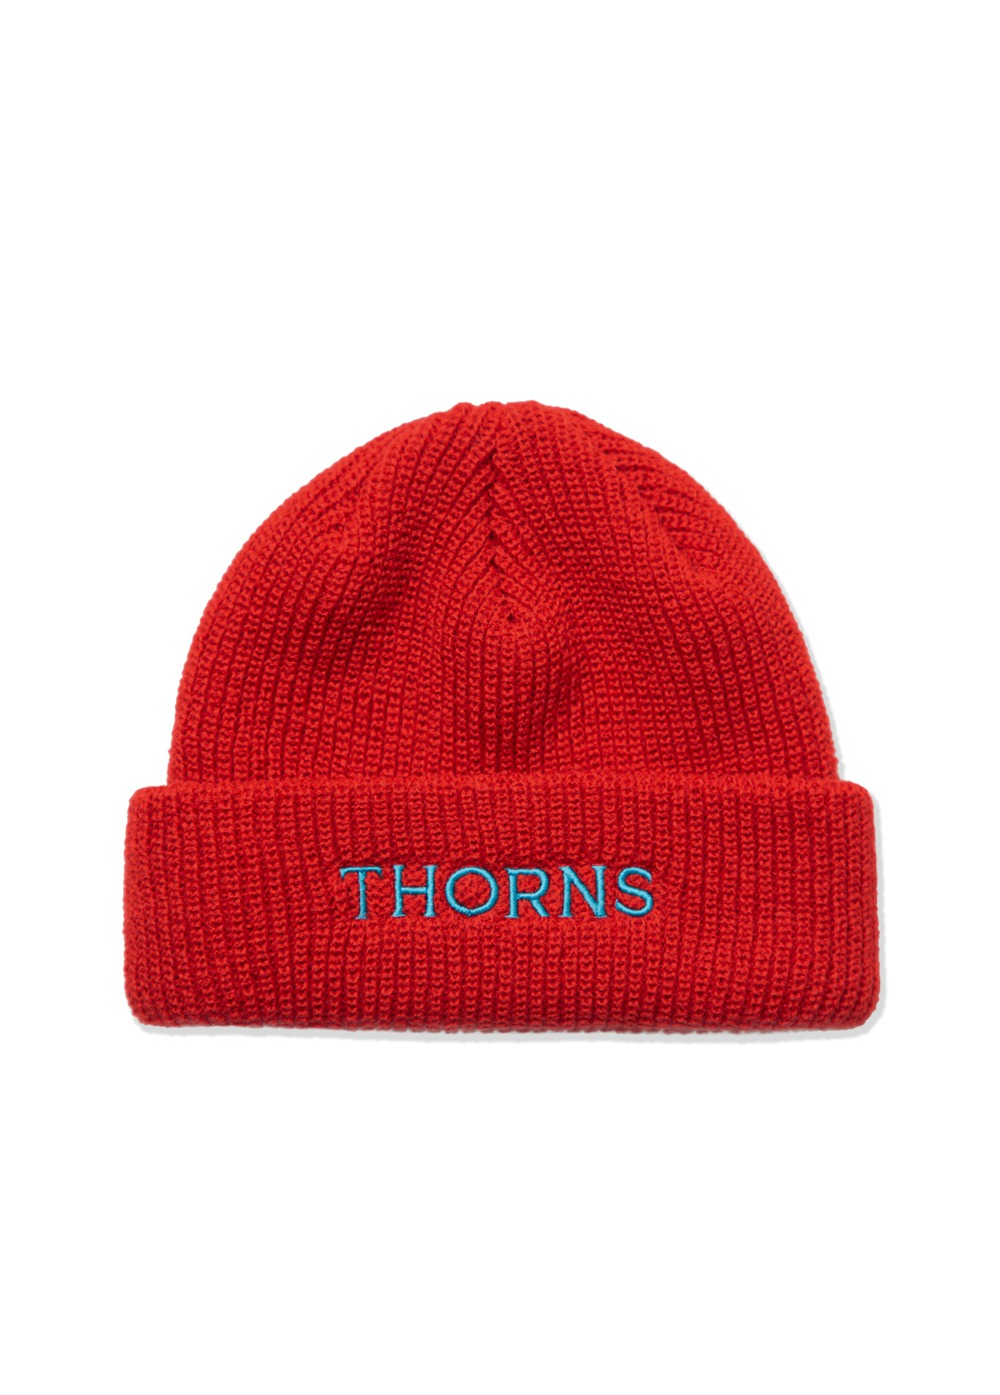 LMC THORNS SHORT BEANIE red